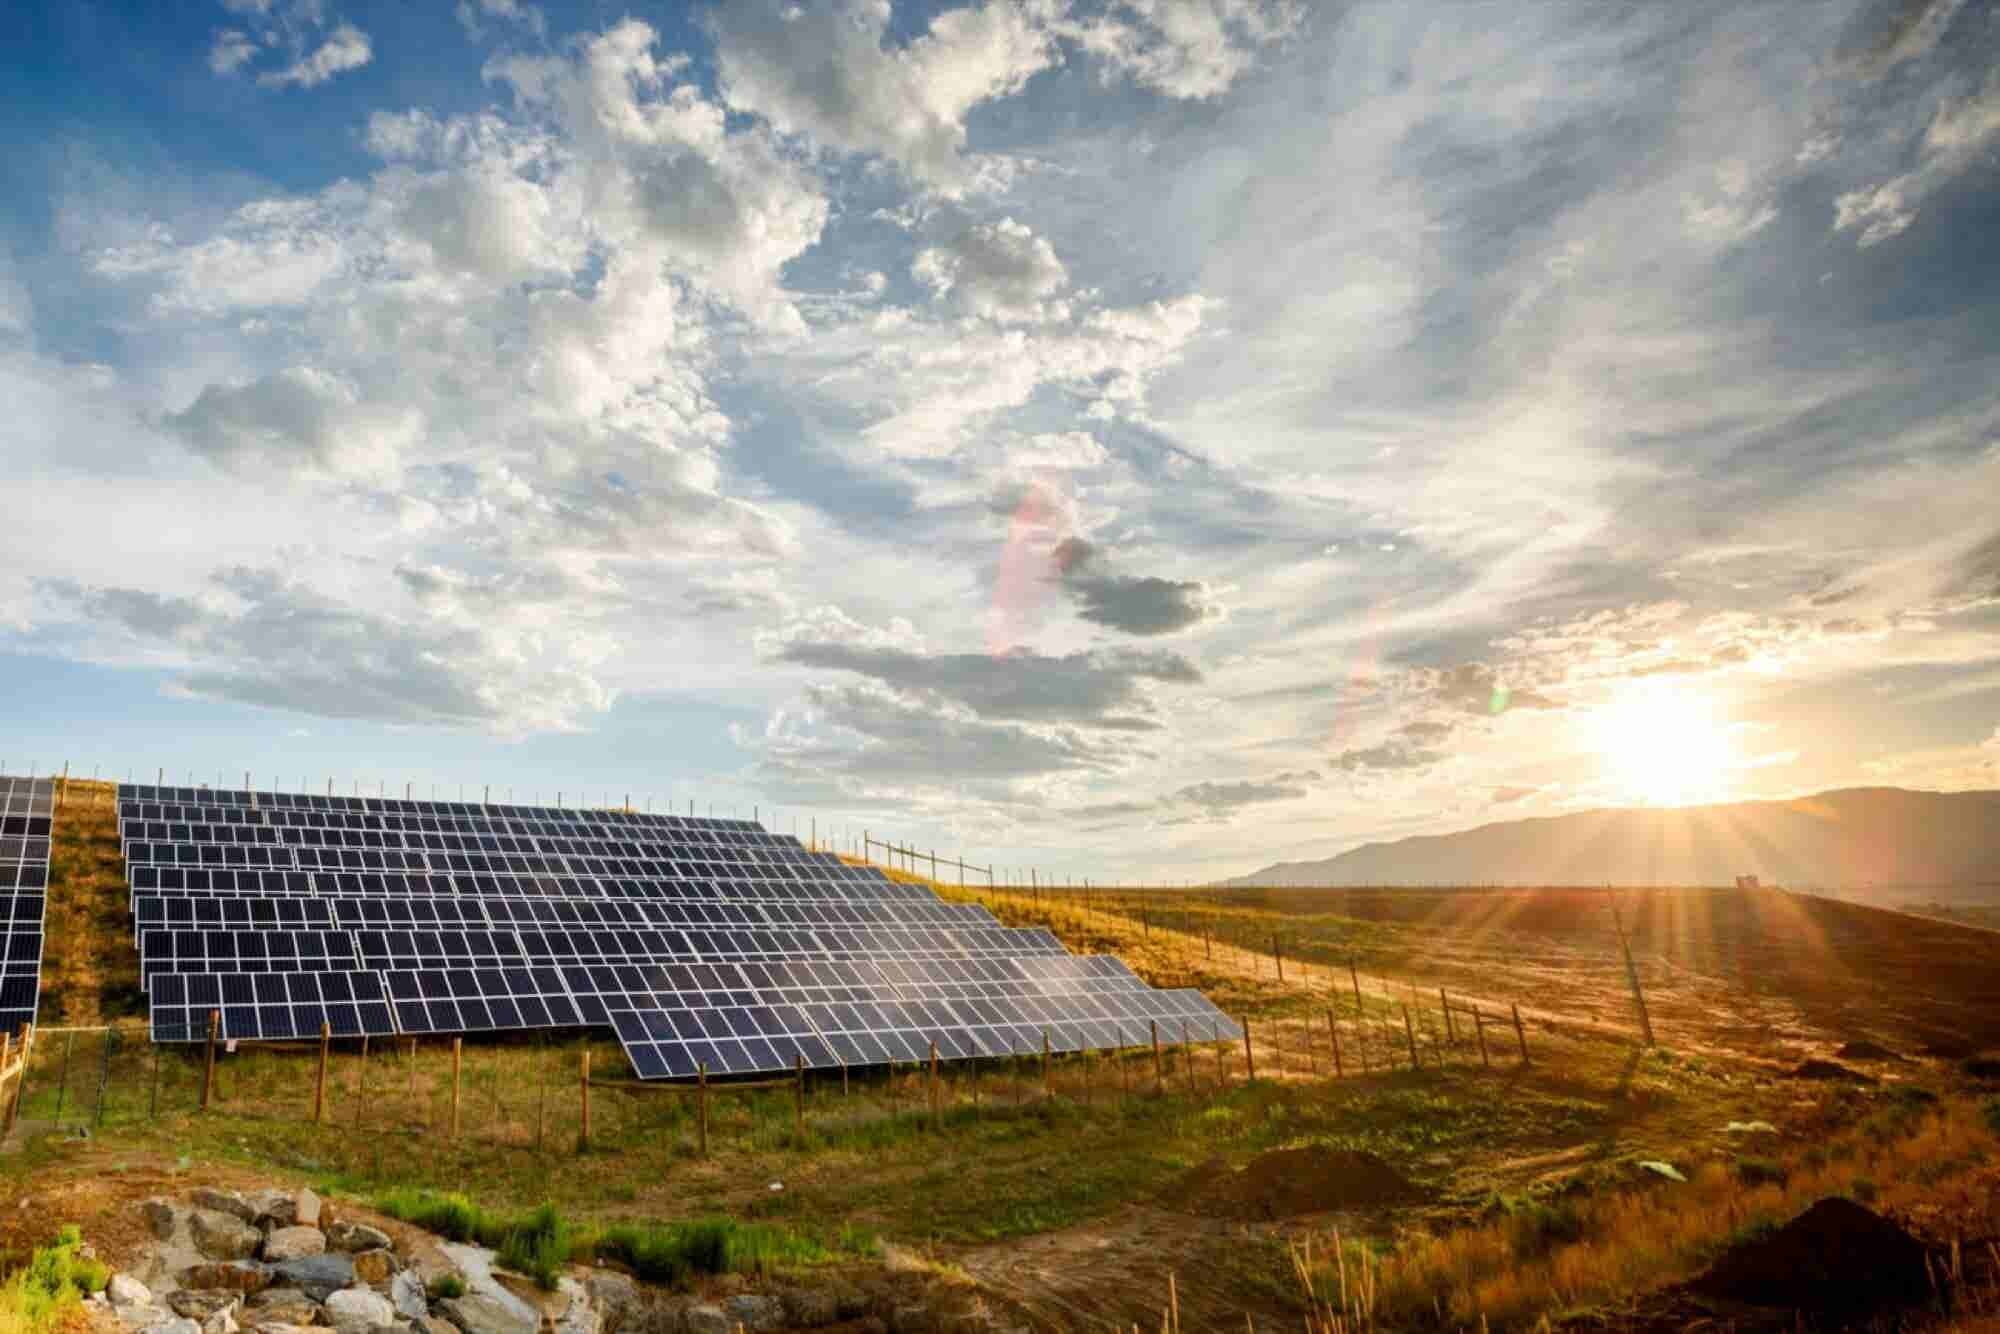 Solar Energy Has Big Apple Potential But New York Real Estate Entrepre...